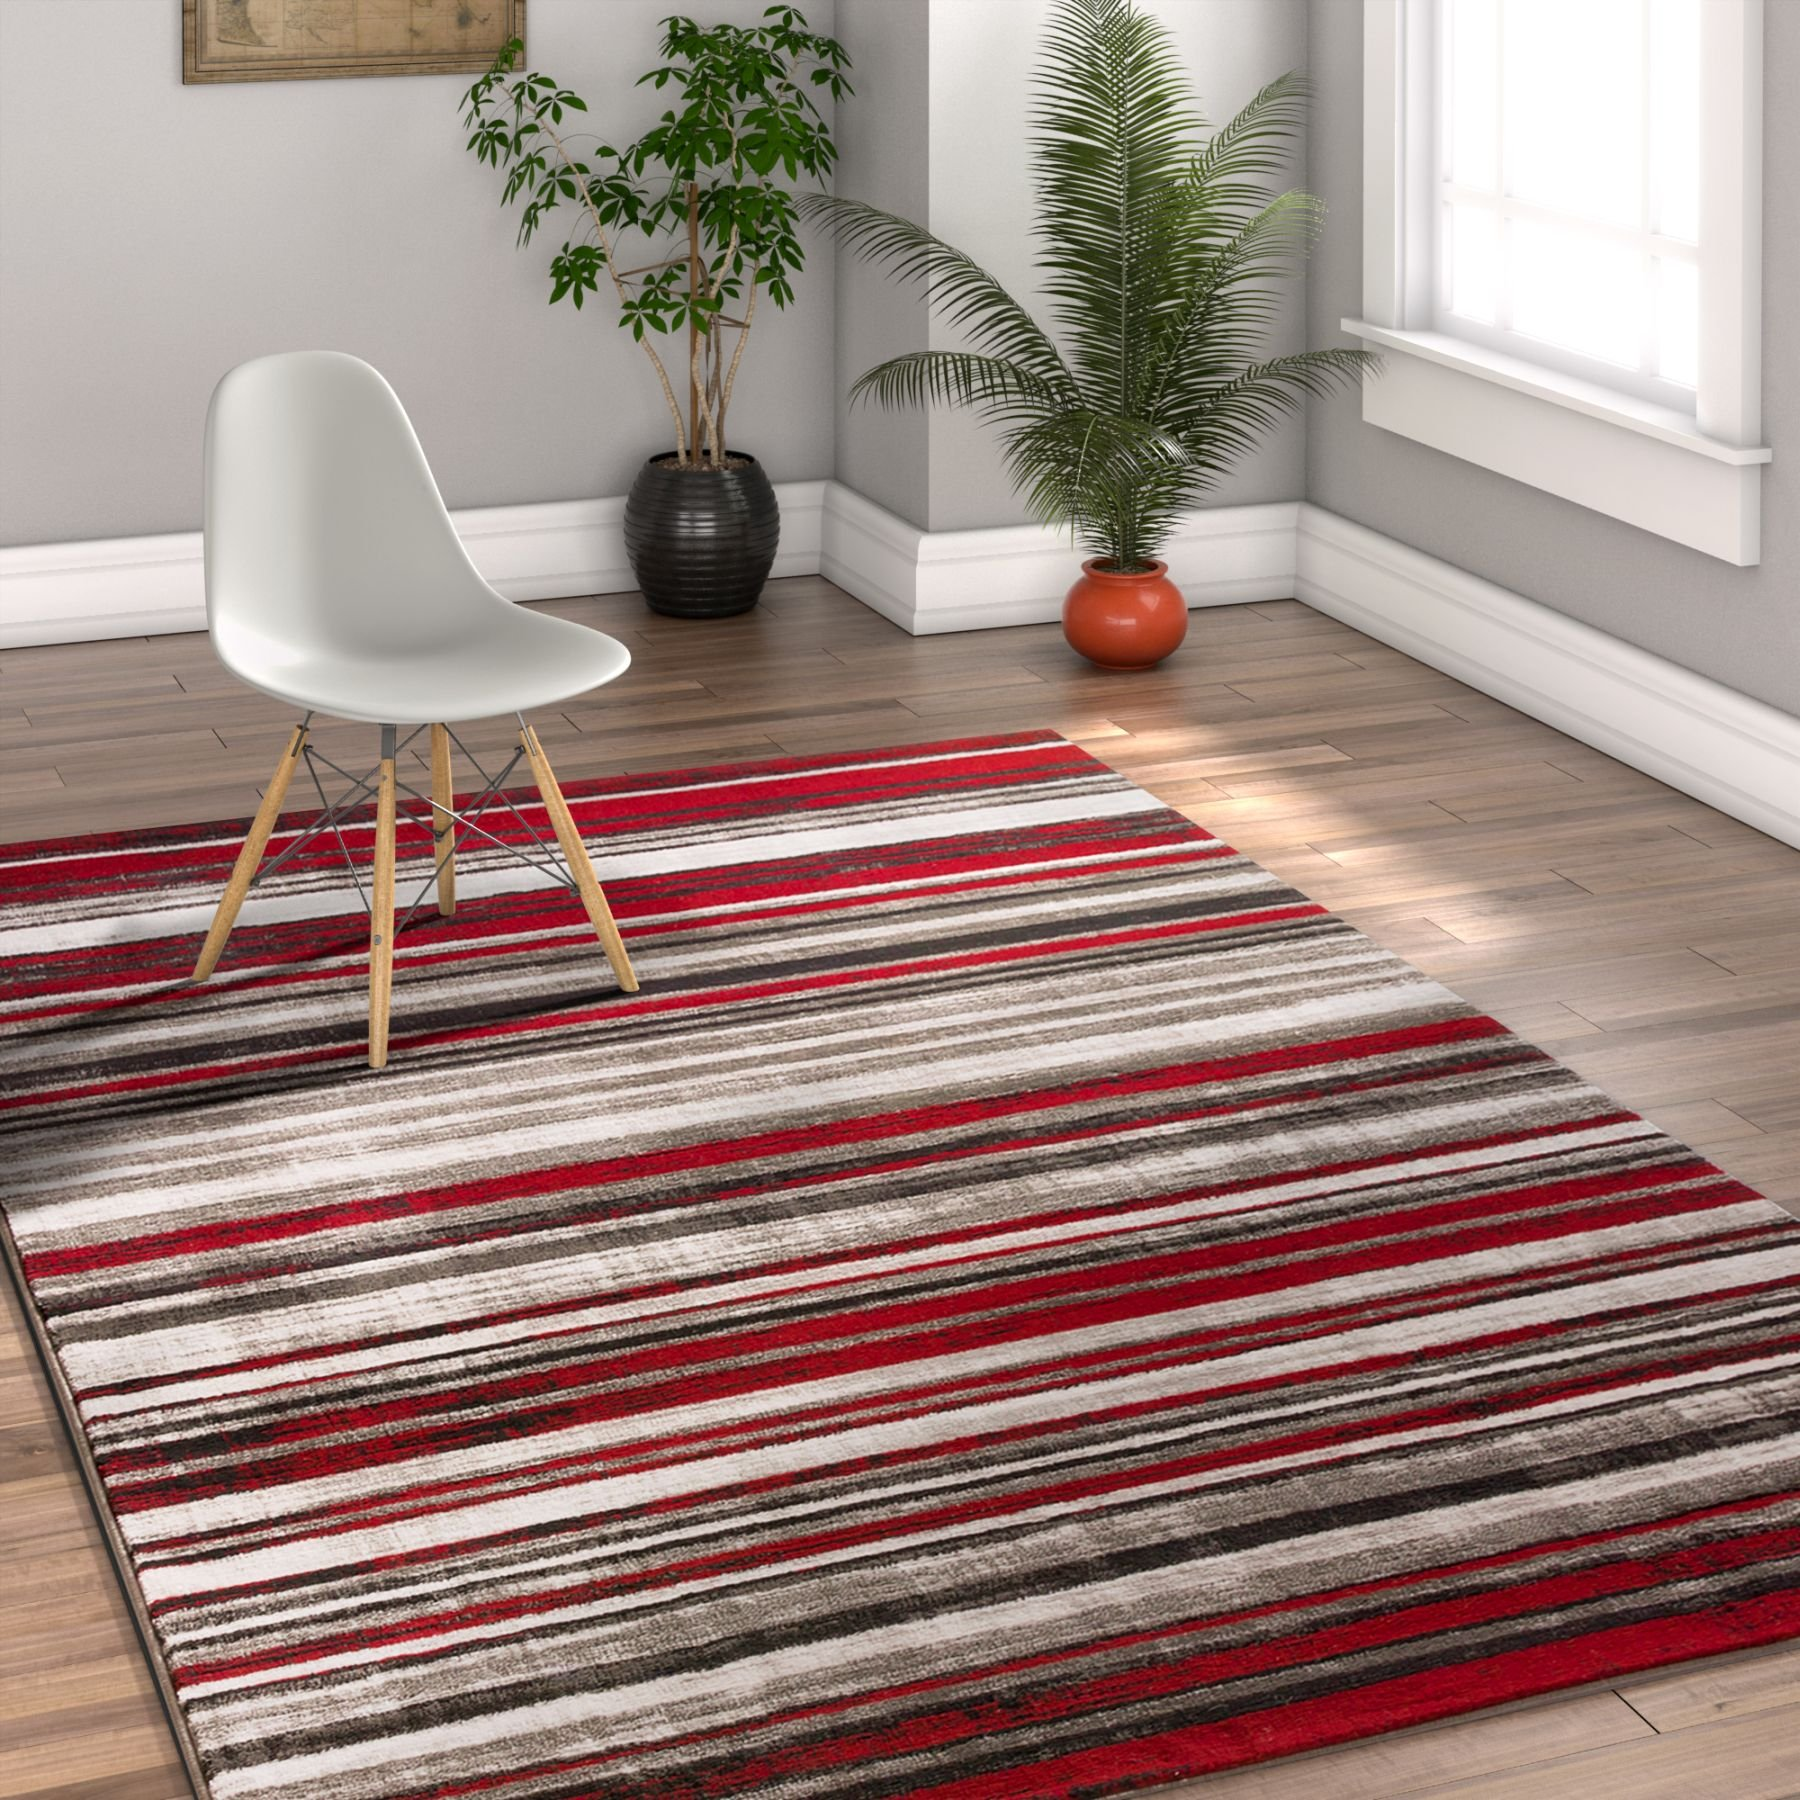 Riviera Stripe Red & Grey Modern Geometric Abstract Shabby Chic 8x10 ( 7'10'' x 9'10'' ) Area Rug Neutral Thick Soft Plush Shed Free